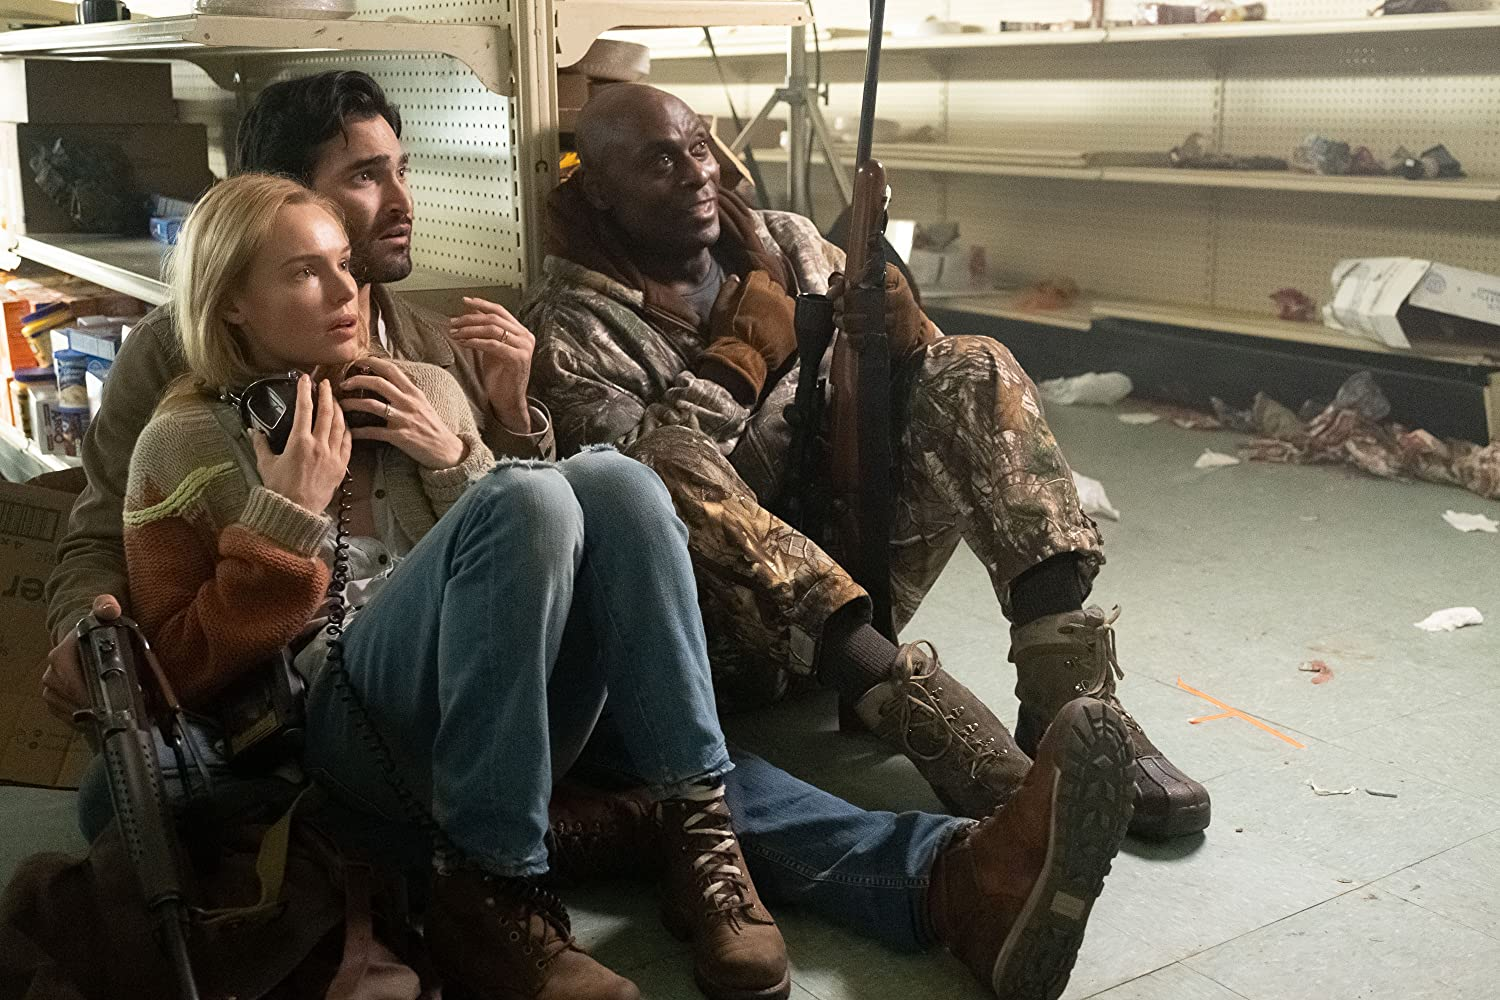 Wife Kate Bosworth, husband Tyler Hoechlin and Lance Reddick in The Domestics (2018)